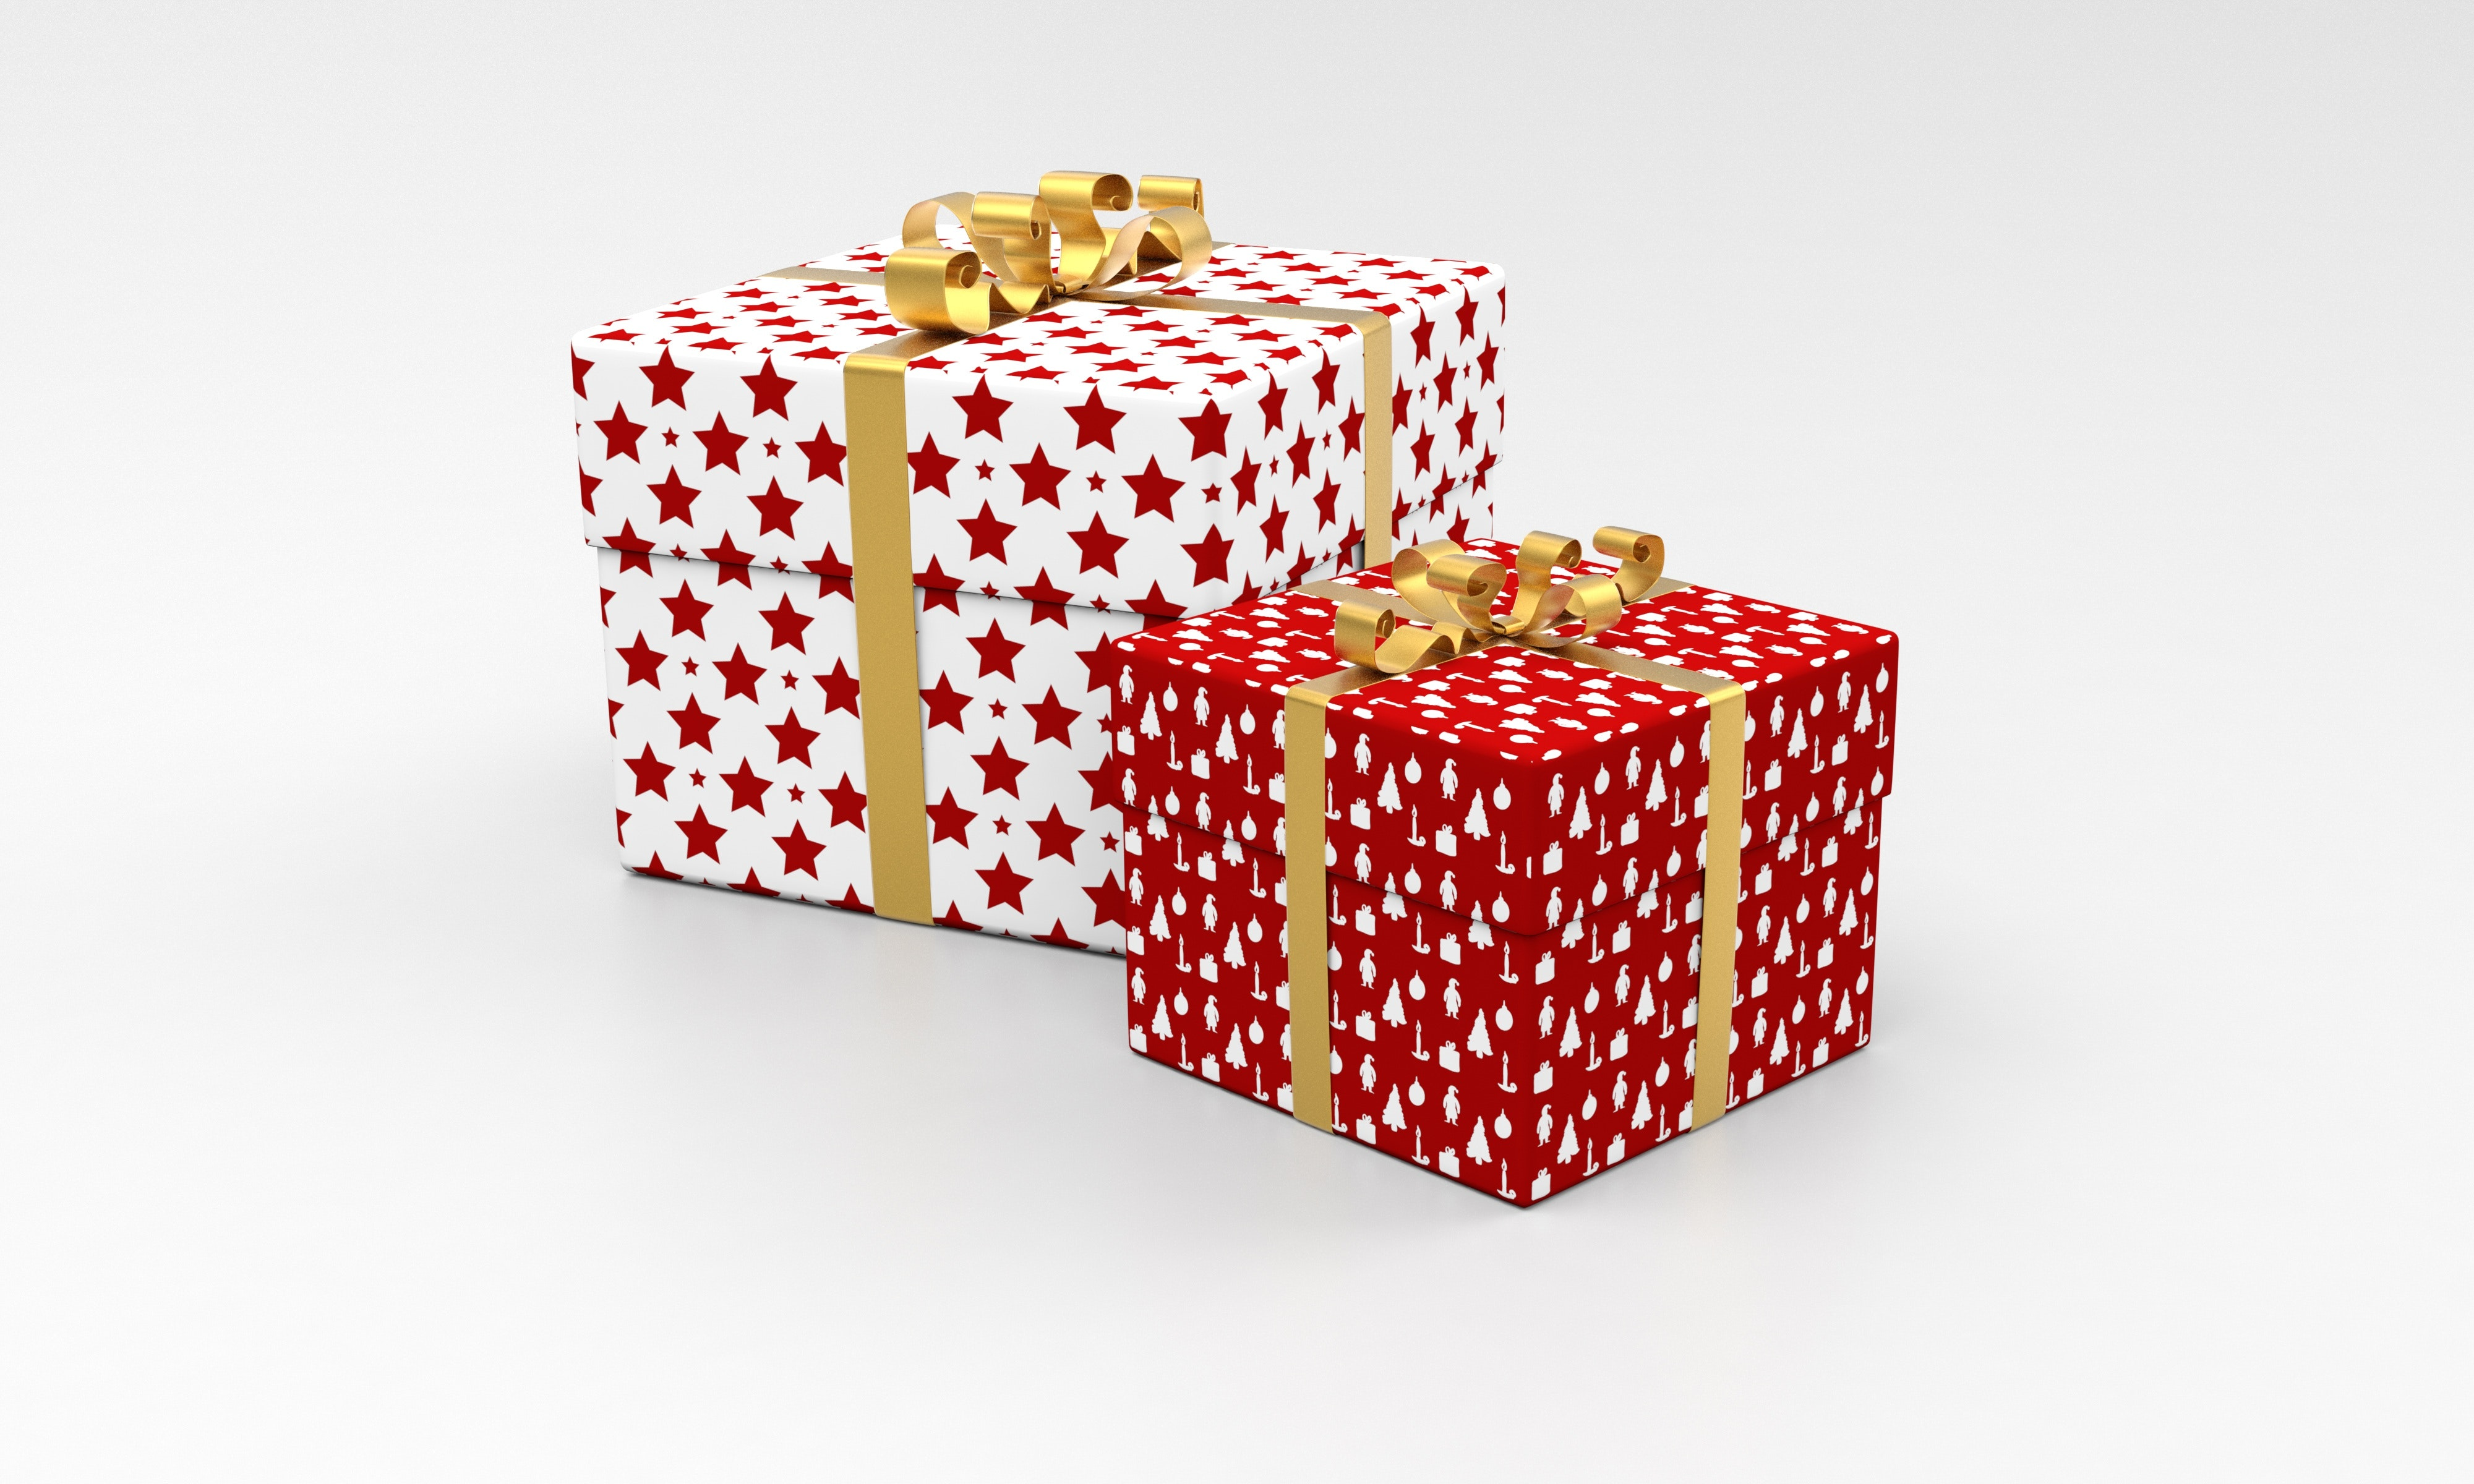 Itz-a-Wrap! Gift Baskets is located in Vancouver, BC, and is a full-service gift basket company serving all of BC and Canada. We offer personal delivery service throughout the Greater Vancouver area, which includes Vancouver, Burnaby, Richmond, Surrey, Delta, New Westminster, North Vancouver, West Vancouver, Coquitlam, and Port Coquitlam.